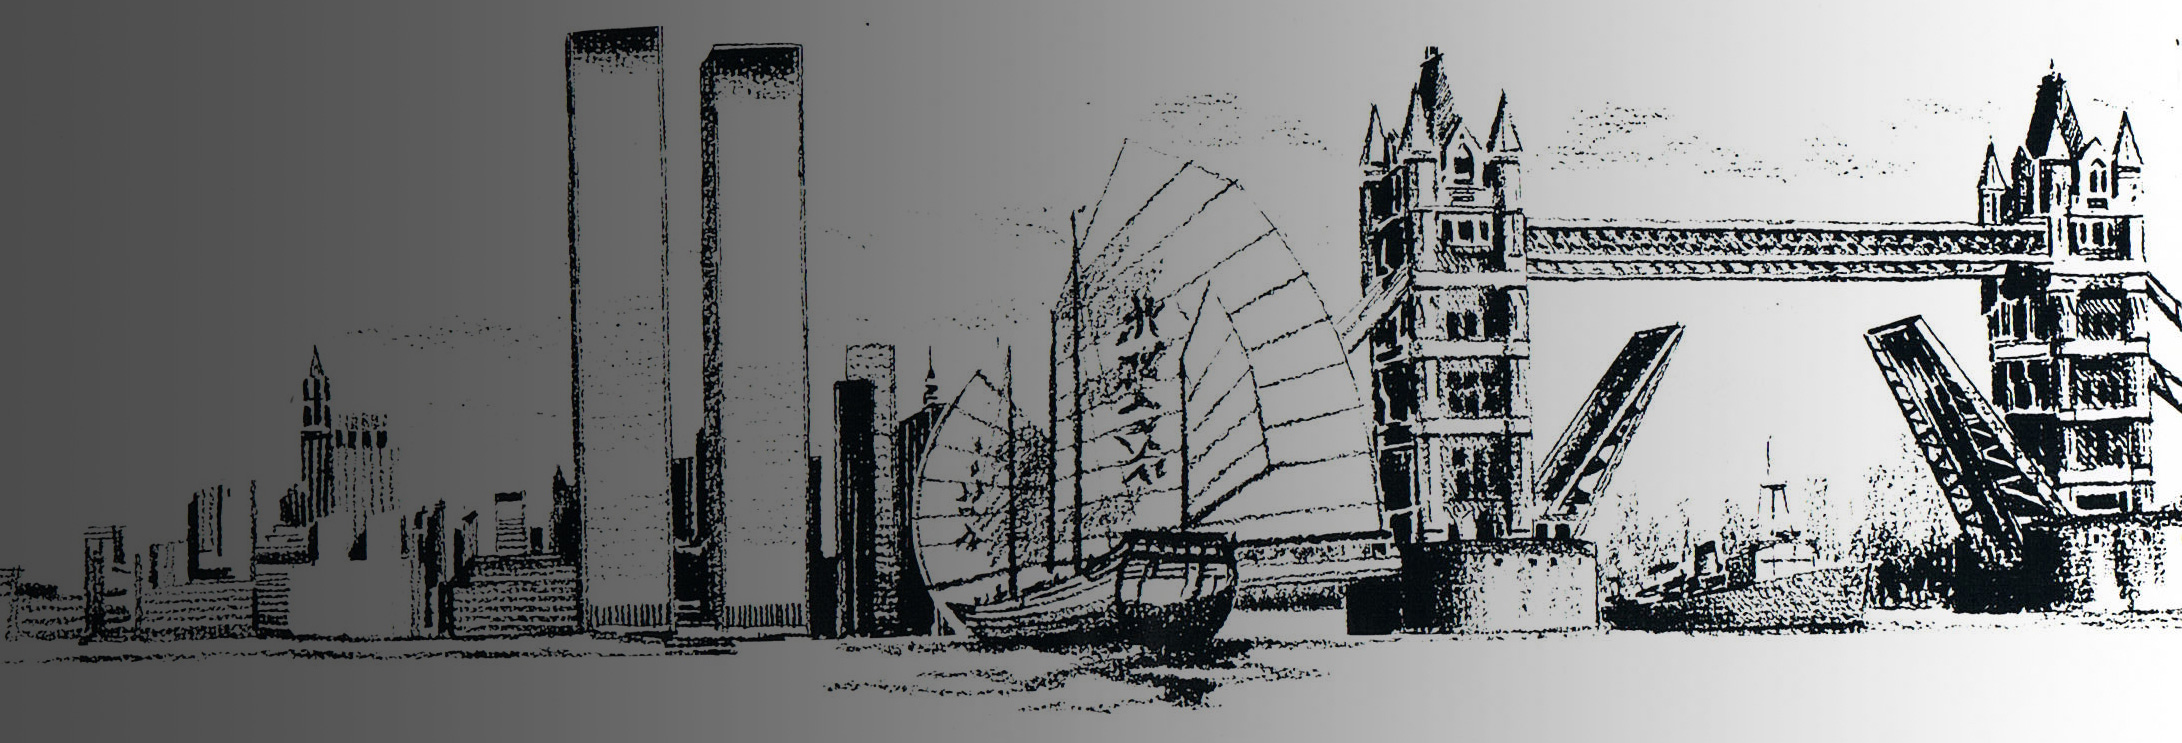 history-line-drawing-1